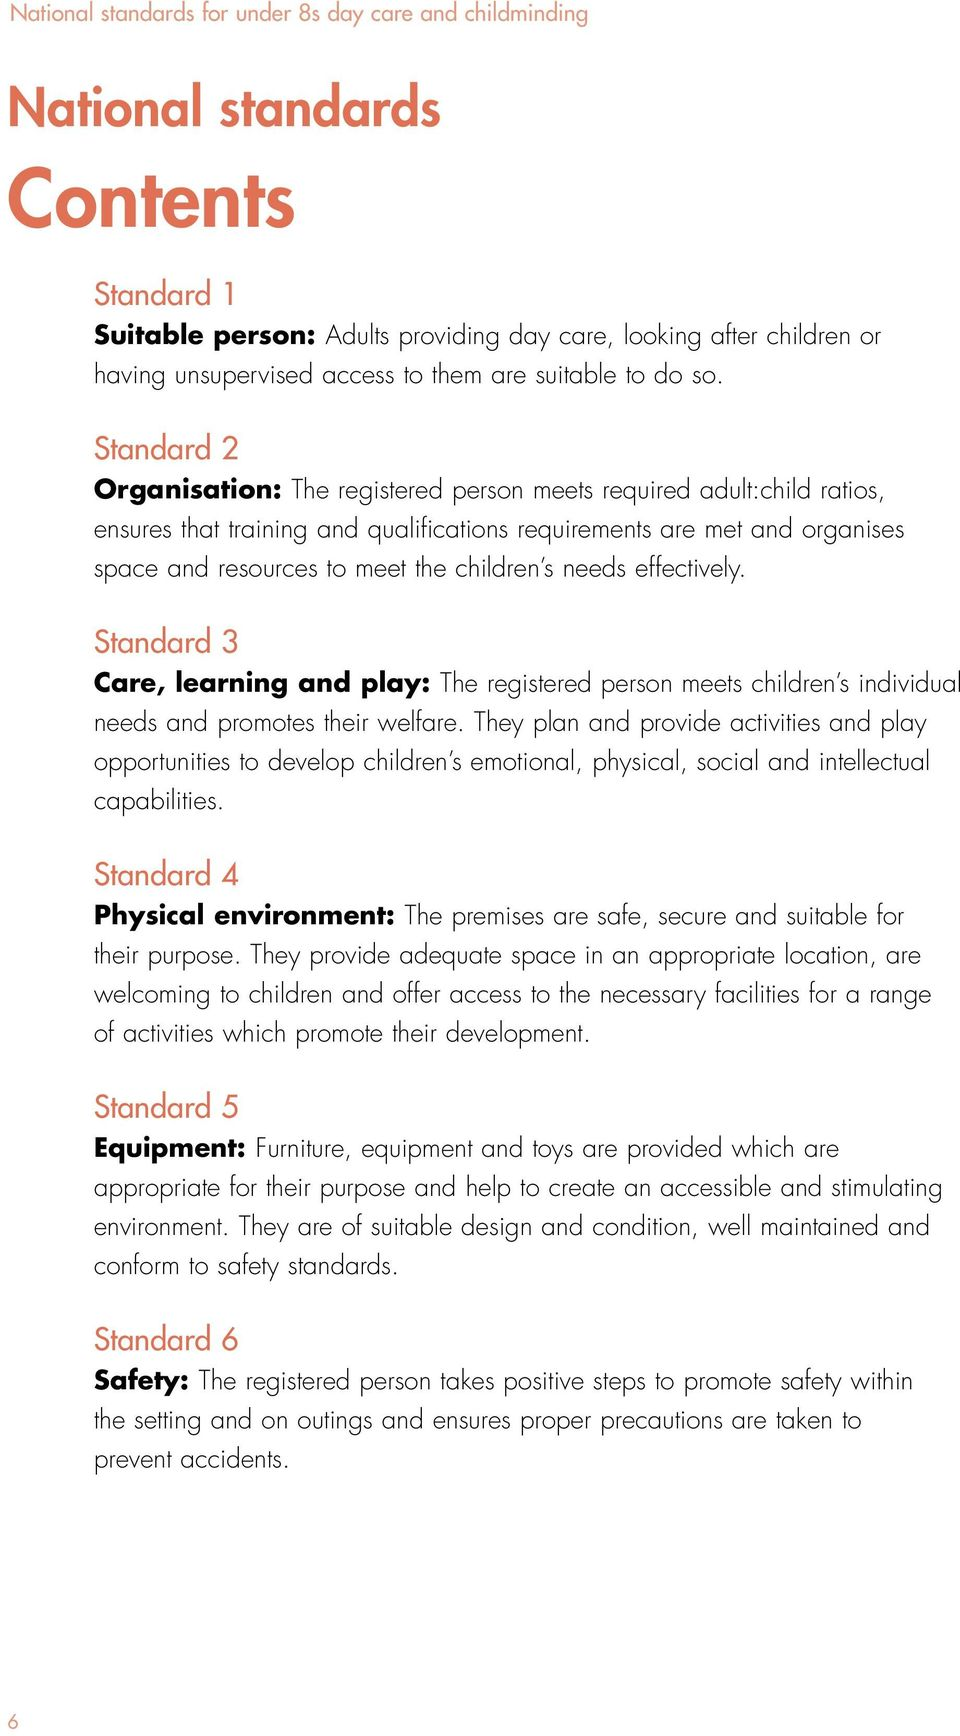 Standard 2 Organisation: The registered person meets required adult:child ratios, ensures that training and qualifications requirements are met and organises space and resources to meet the children